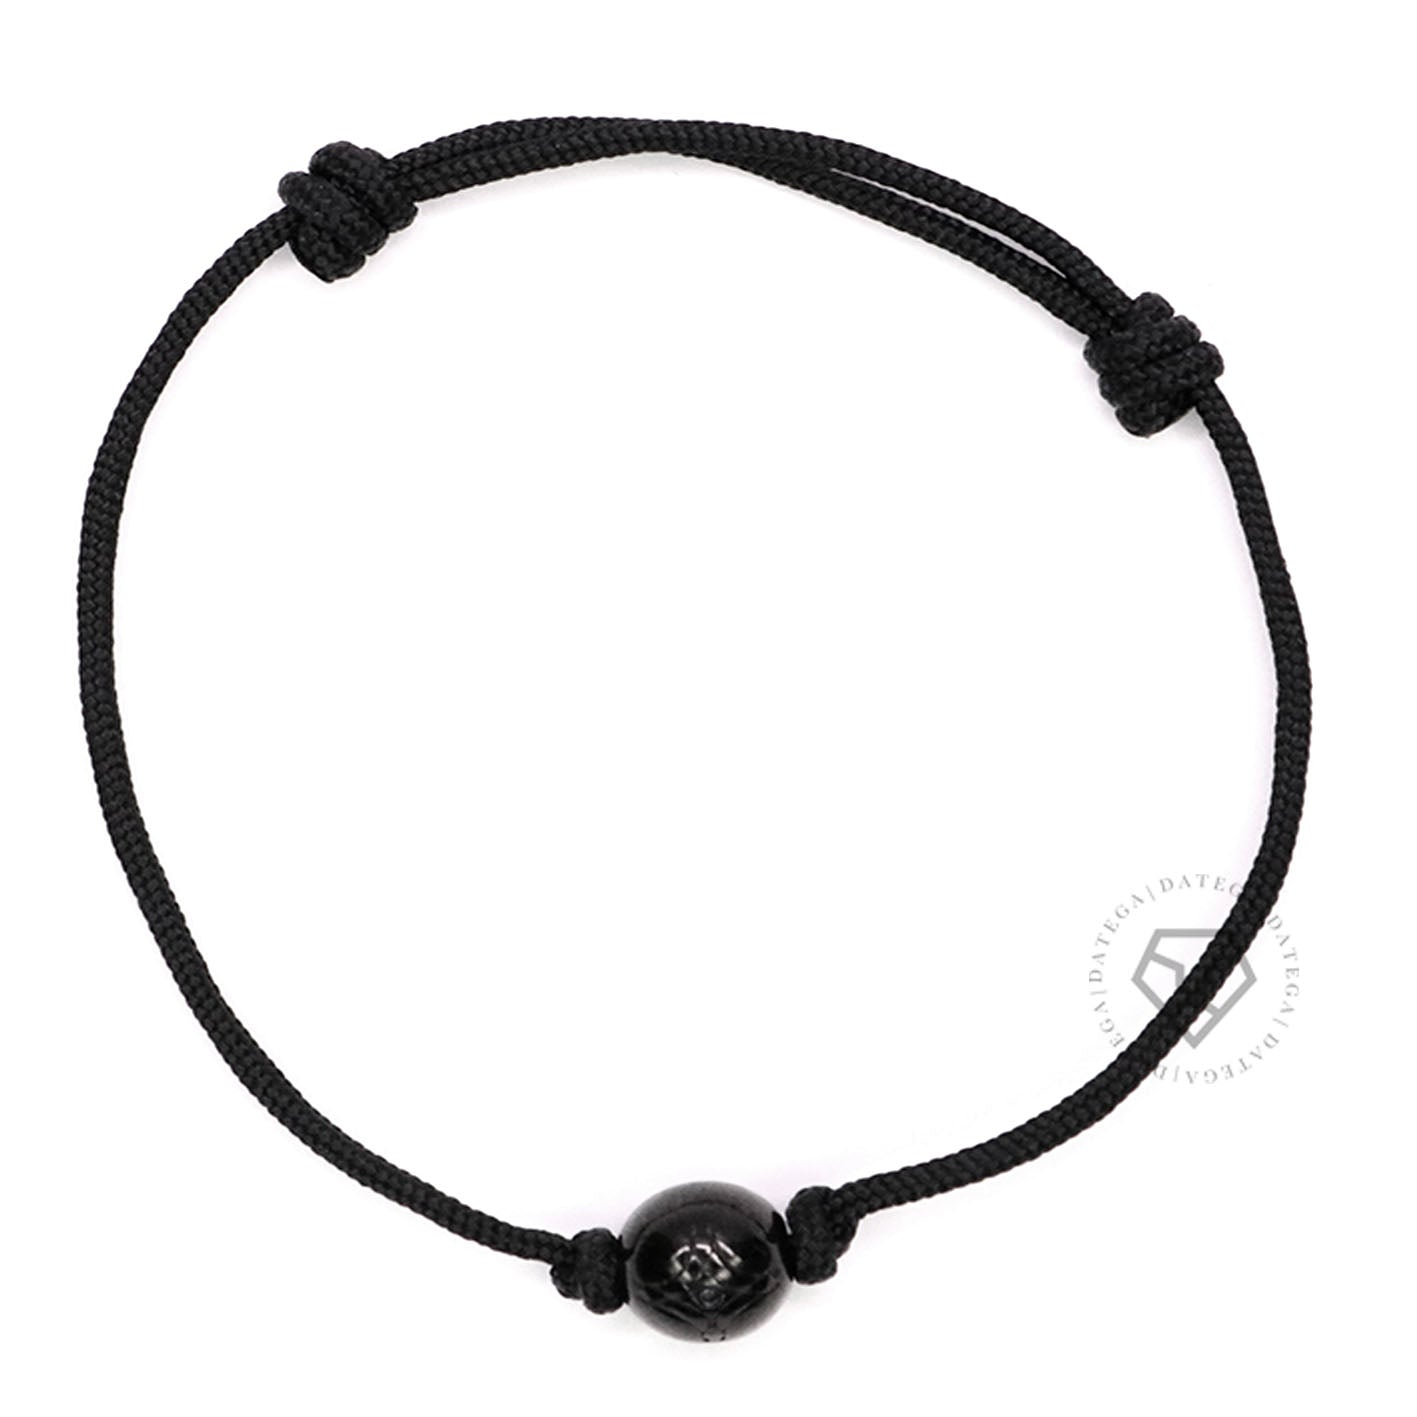 Insignia Ruthenium - Black Rope